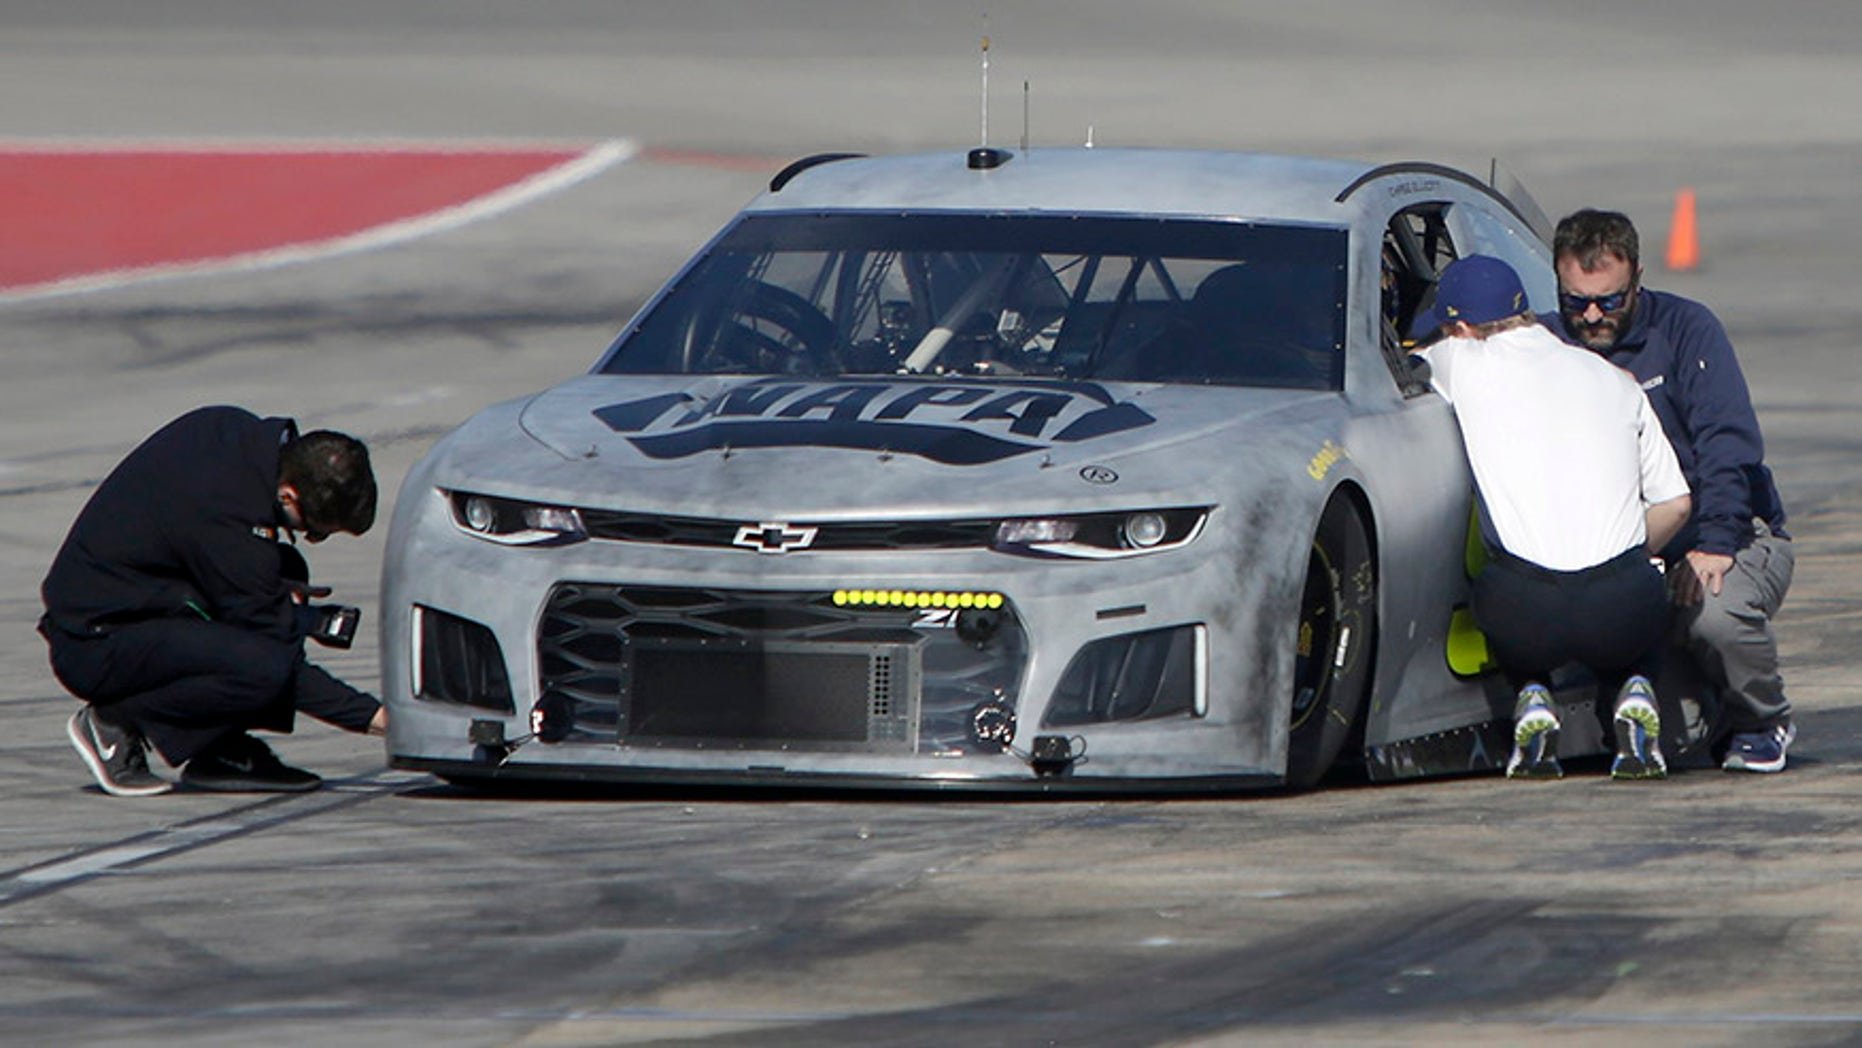 Chase Elliott pulls in to pit row while participating in NASCAR tire tests at Texas Motor Speedway in Fort Worth, Texas, Tuesday, Jan. 9, 2018. (Brad Loper/Star-Telegram via AP)